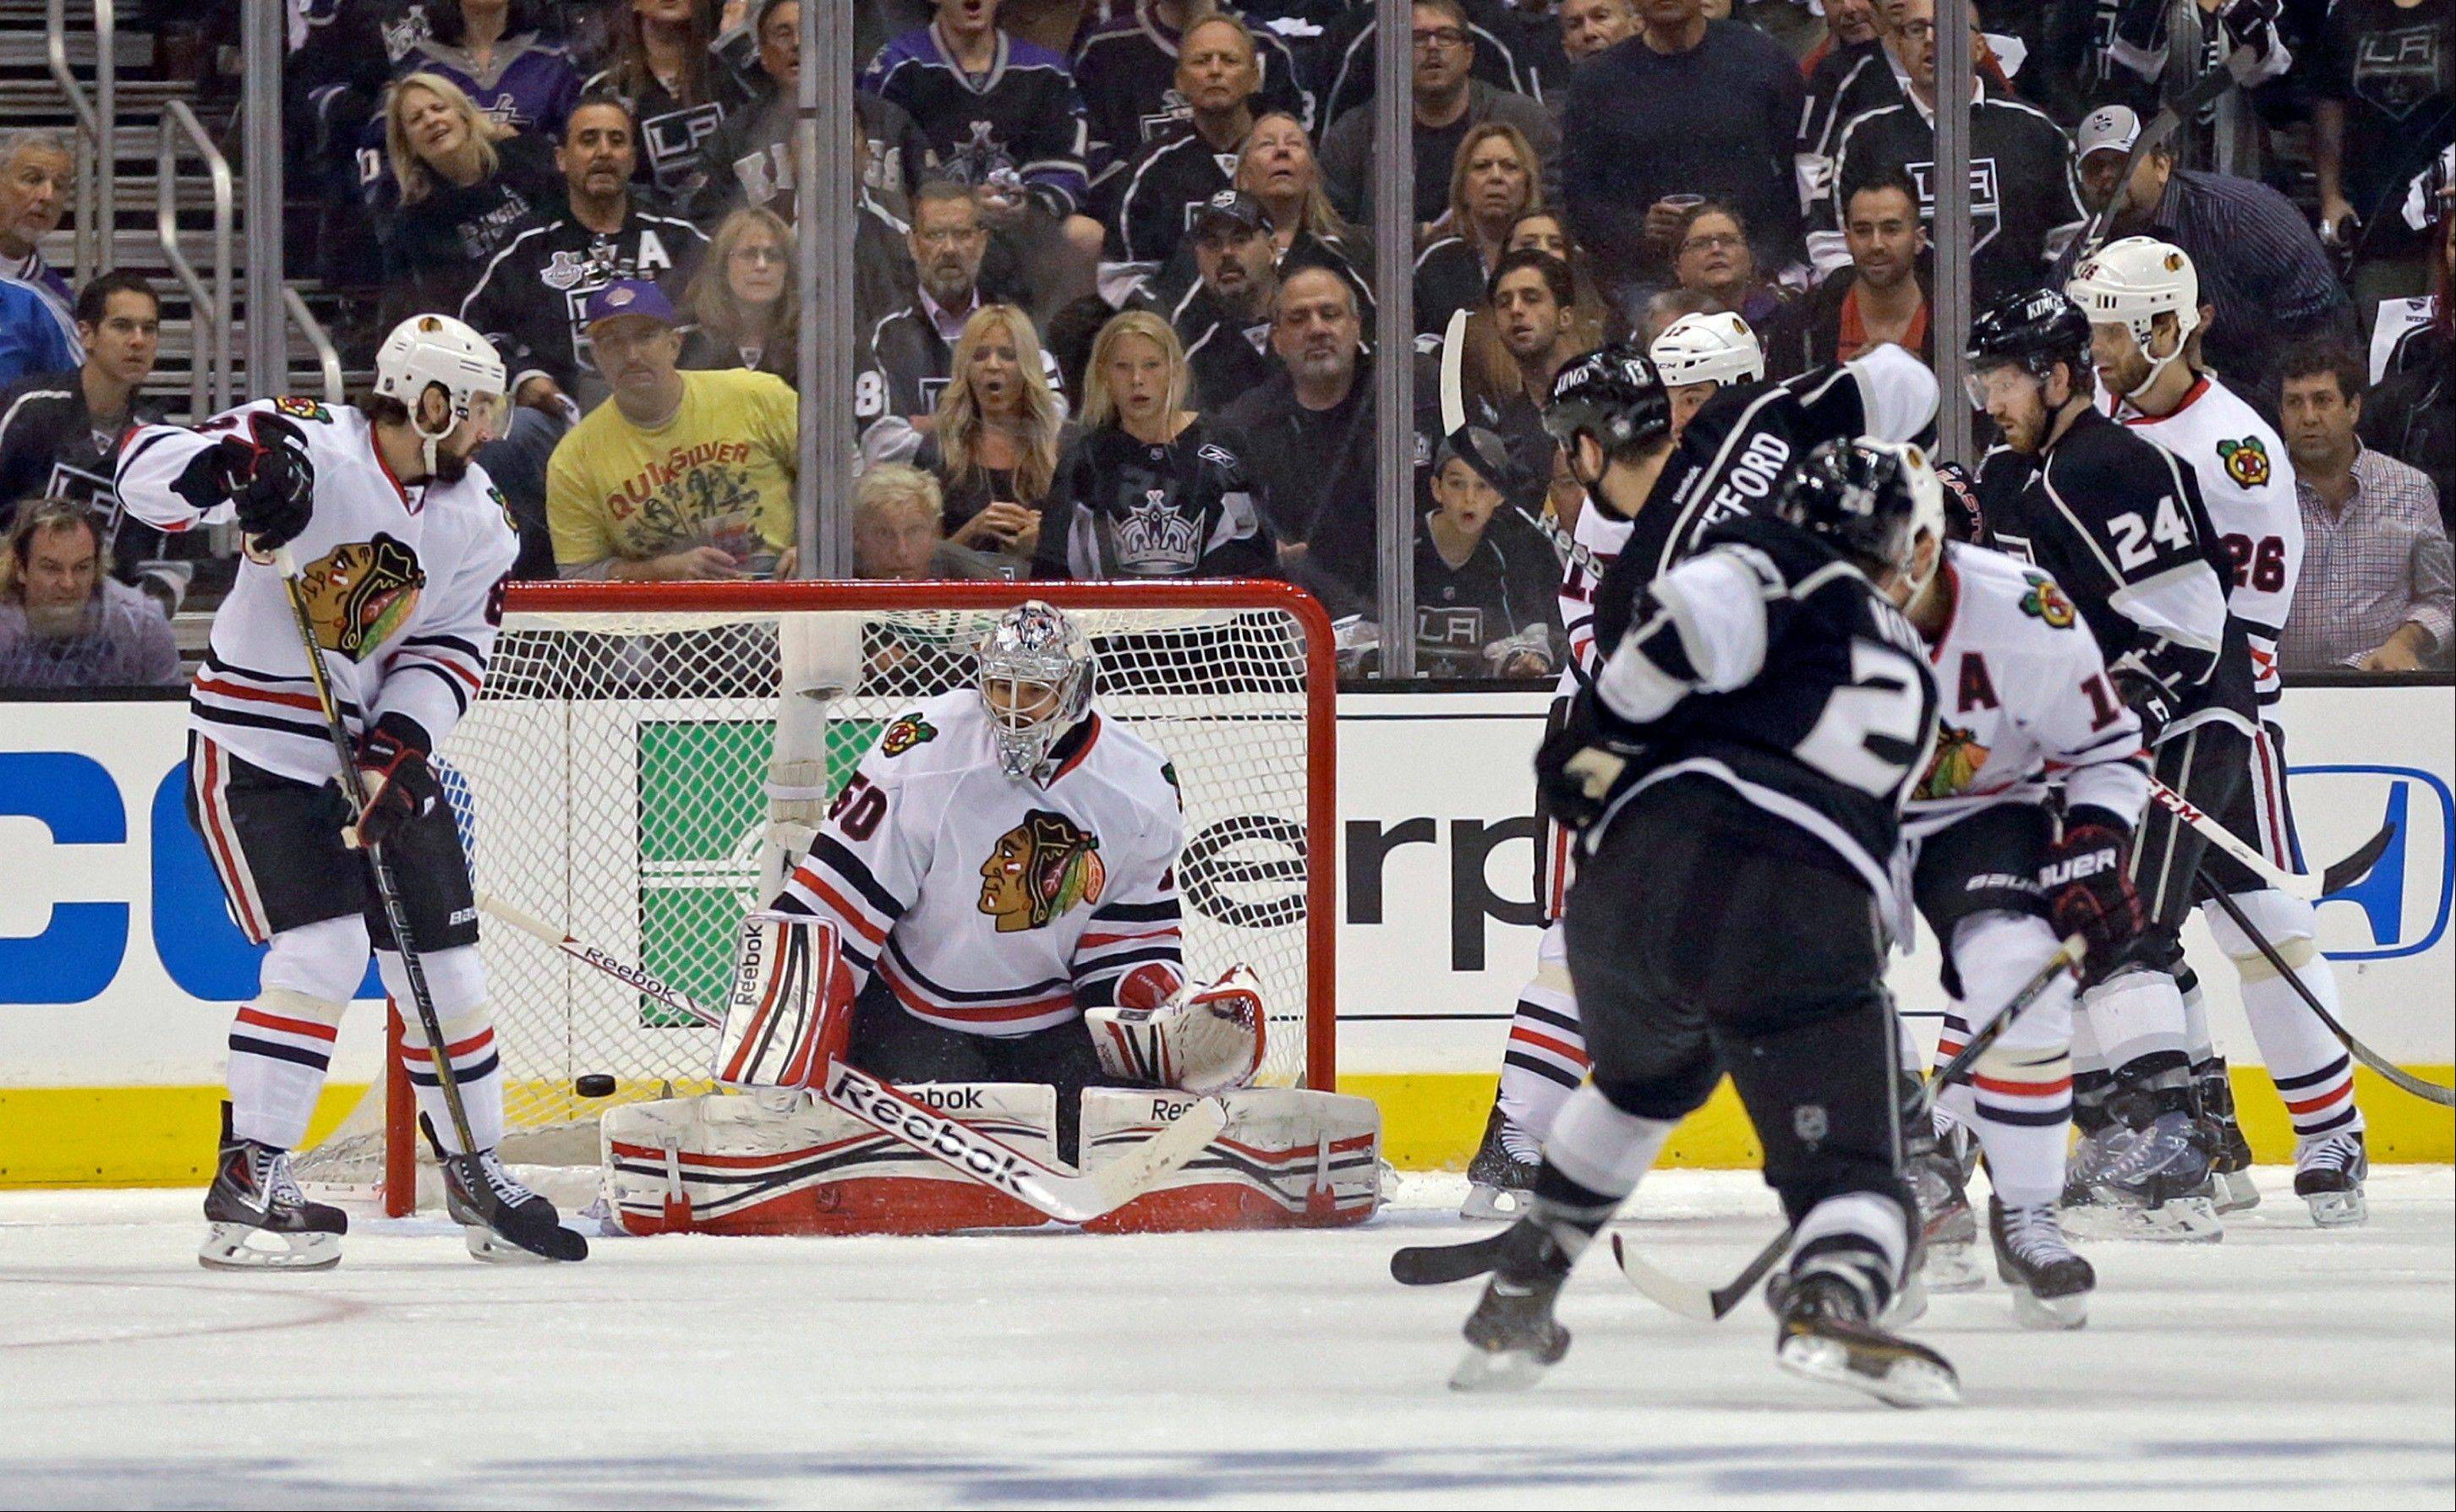 Los Angeles Kings defenseman Slava Yoynov, right front, of Russia, scores against Chicago Blackhawks goalie Corey Crawford (50) during the first period of Game 3 of the NHL hockey Stanley Cup playoffs Western Conference finals, in Los Angeles on Thursday, June 6, 2013.